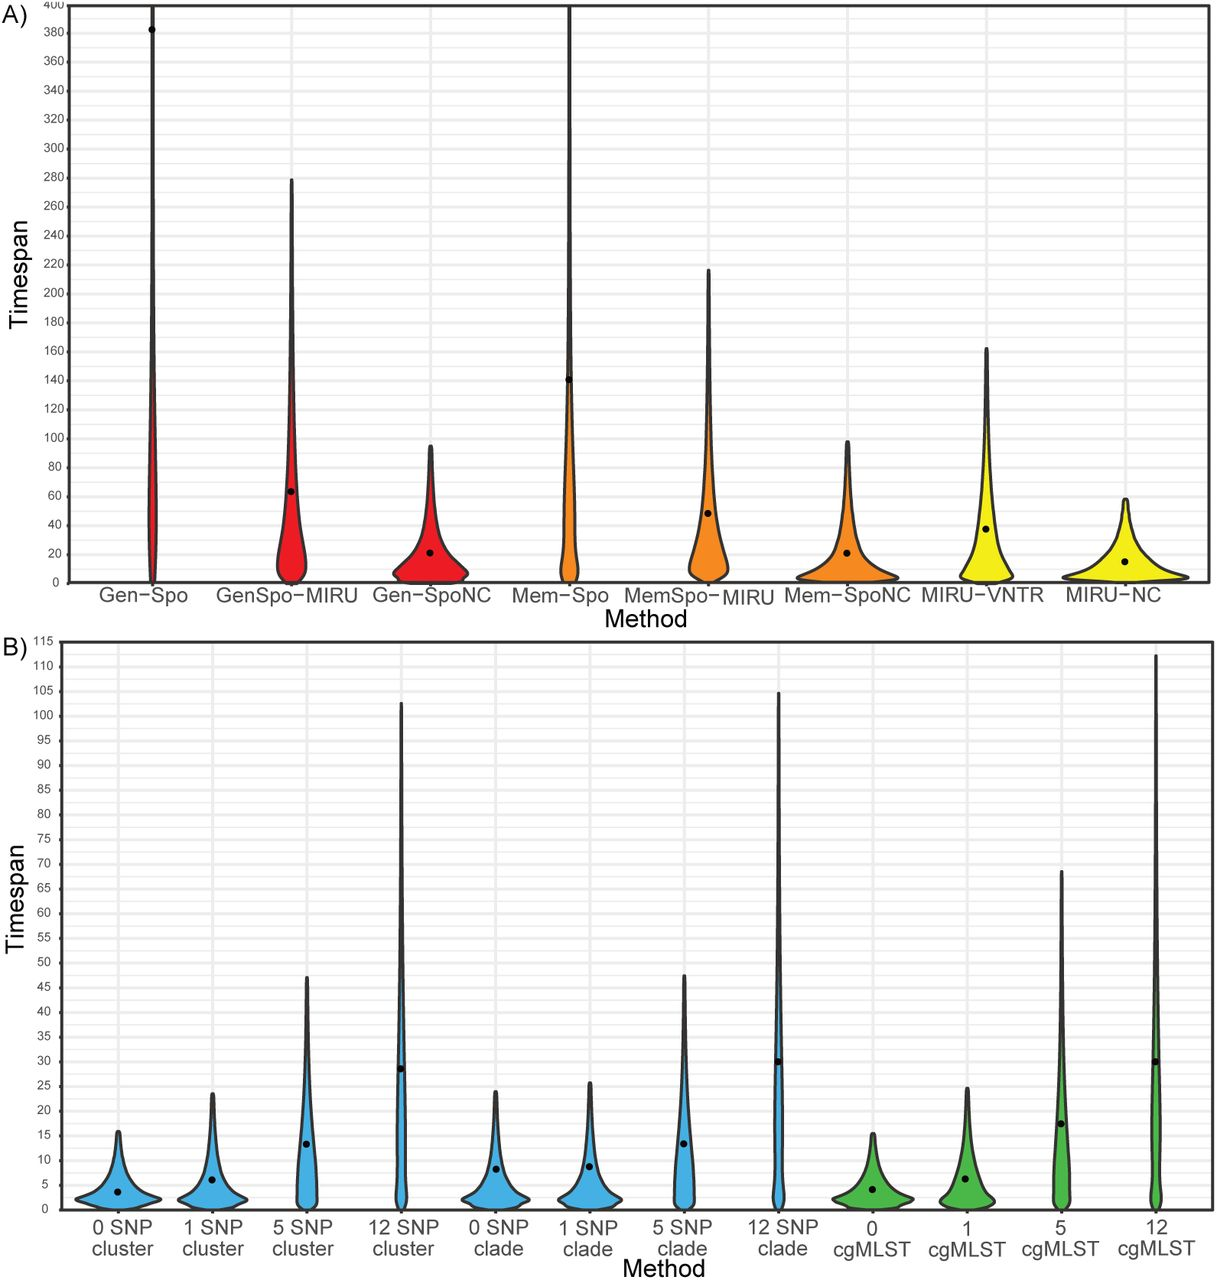 The relationship between transmission time and clustering methods in